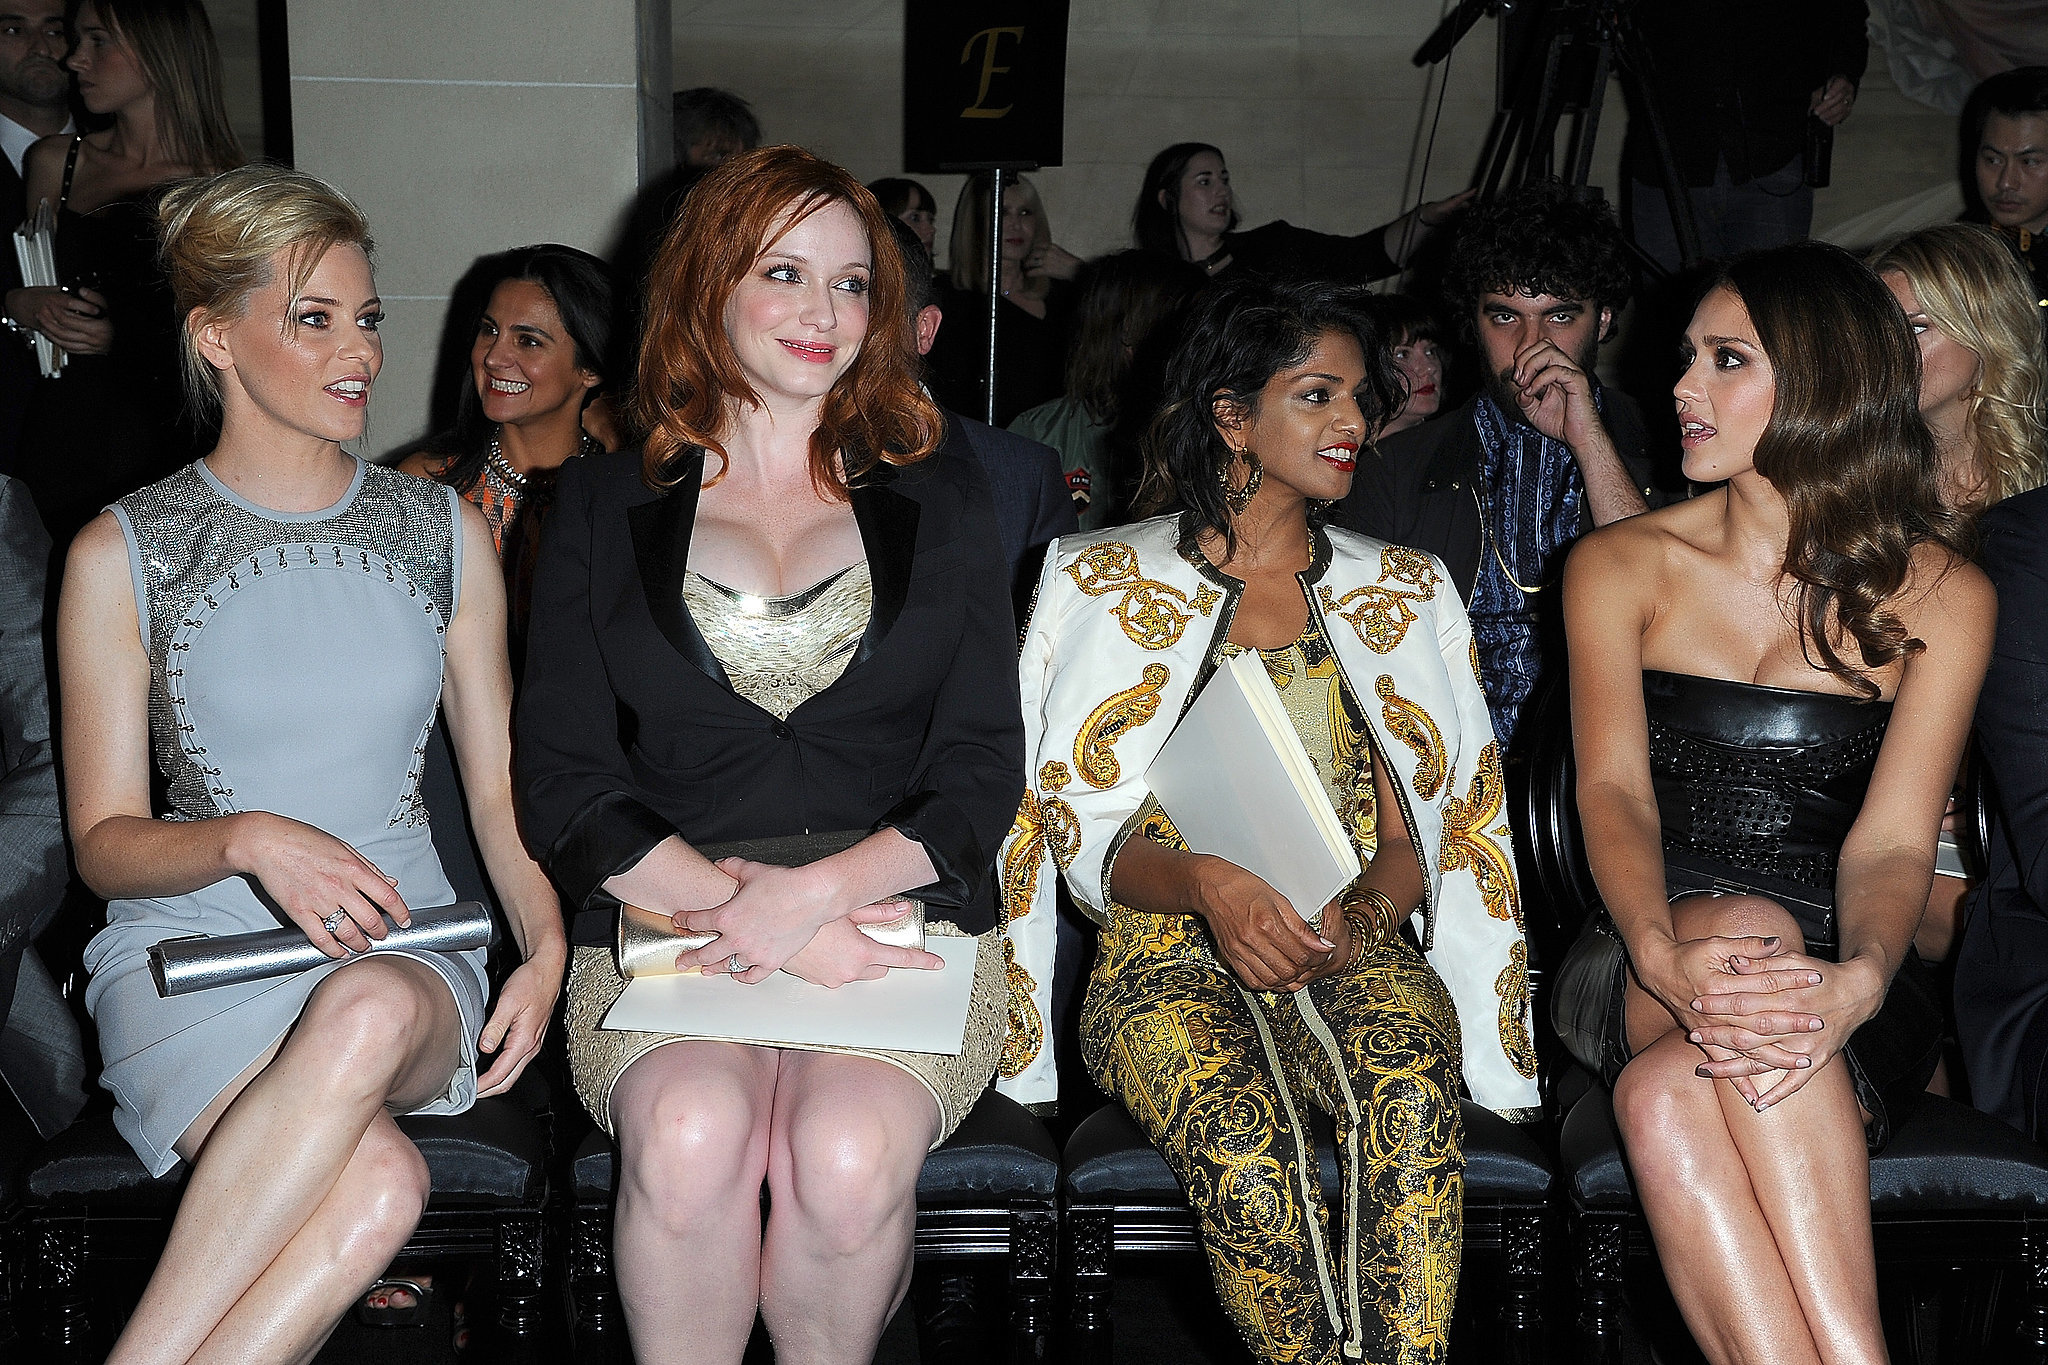 Elizabeth Banks, Christina Hendricks, M.I.A., and Jessica Alba were together in July 2012 for the Paris Versace Haute Couture show.